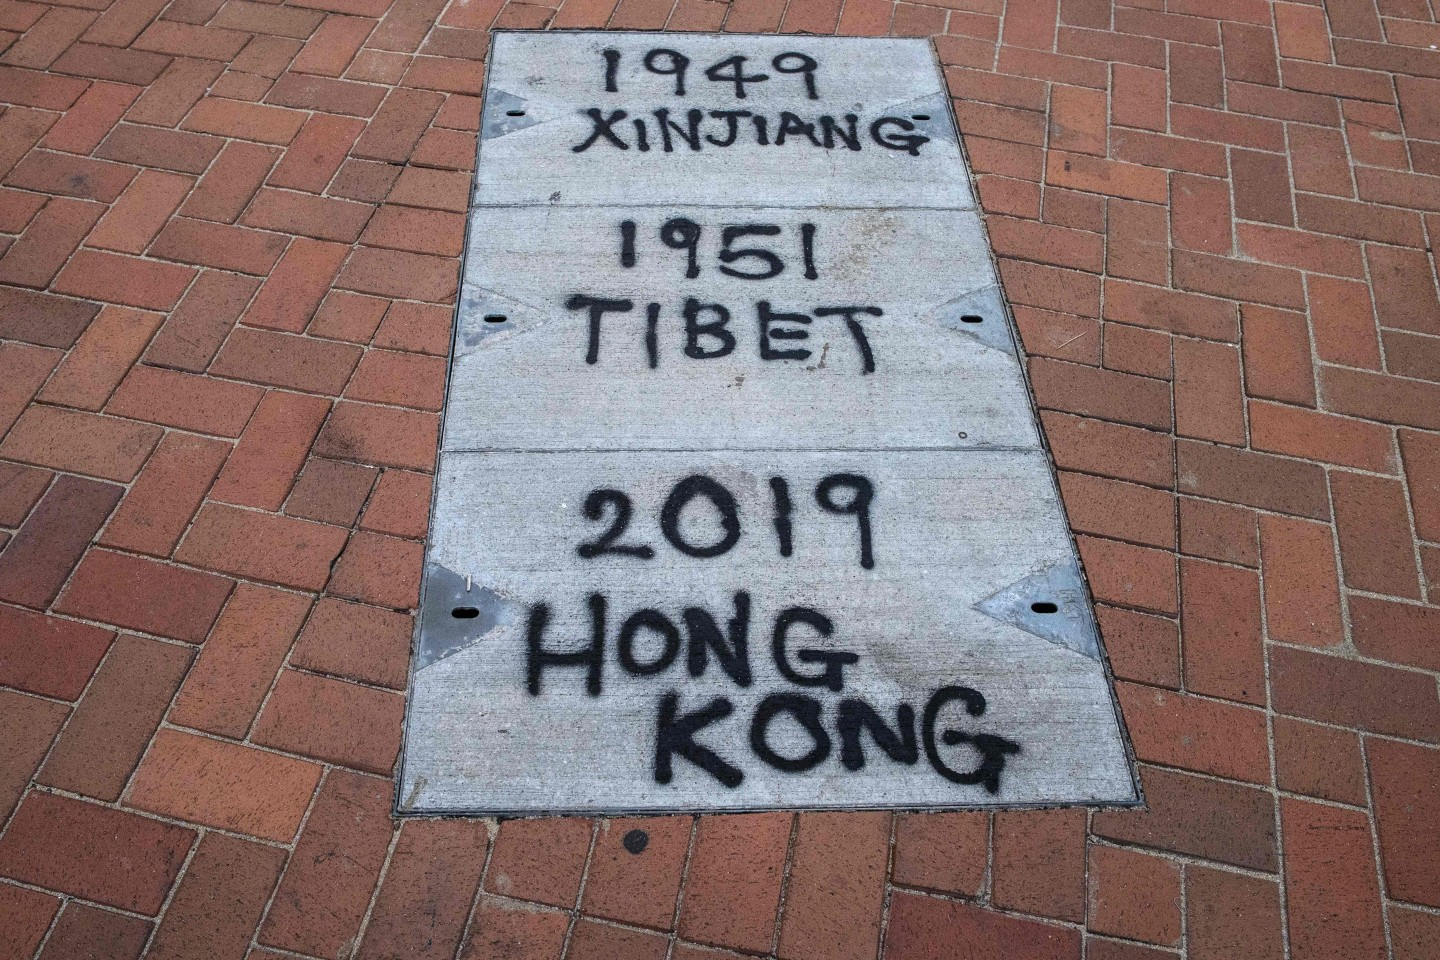 Graffiti relating to Xinjiang and Tibet is seen on the pavement during a rally in Hong Kong on December 22, 2019 to show support for the Uighur minority in China. (Anthony Wallace/AFP)